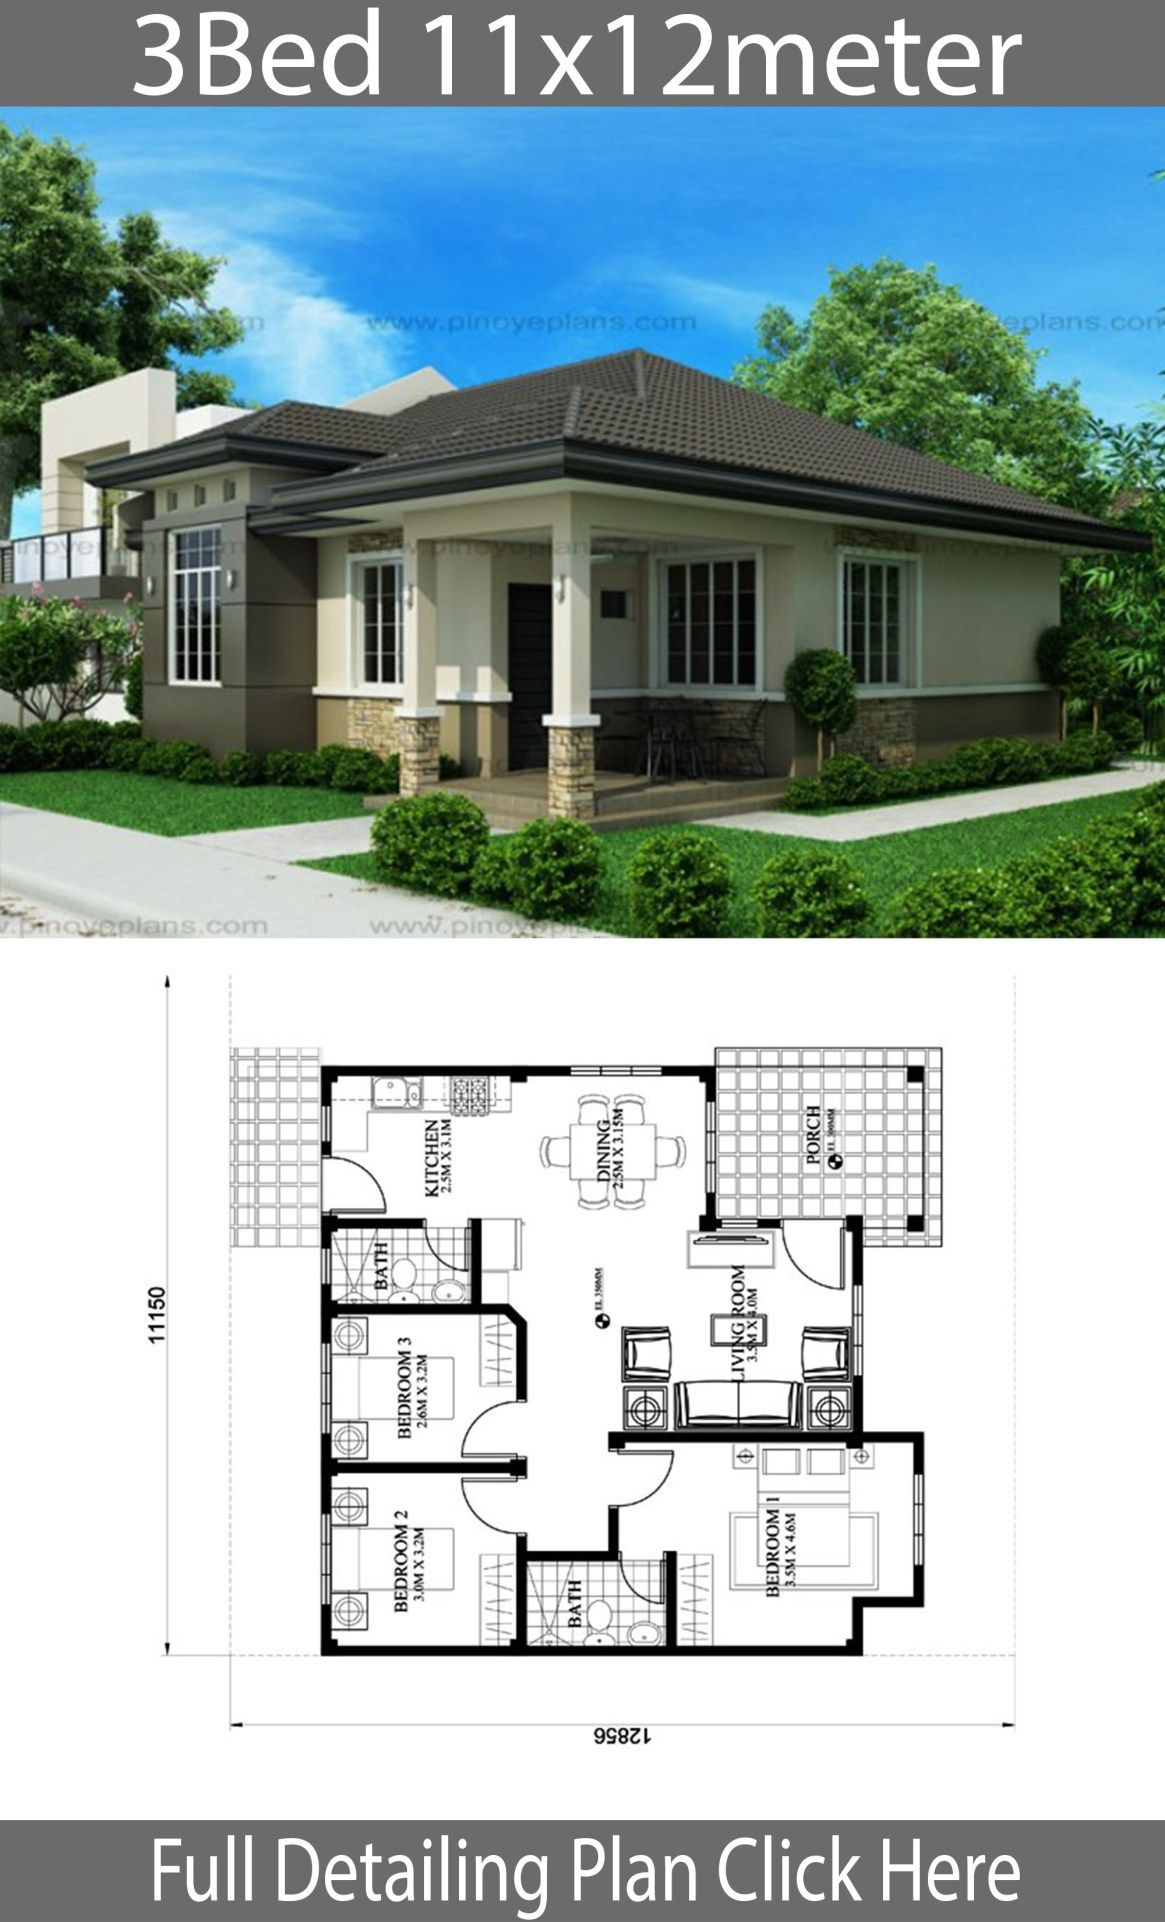 House Design 11x12m With 3 Bedrooms Architect Design House Simple House Design Simple Bungalow House Designs